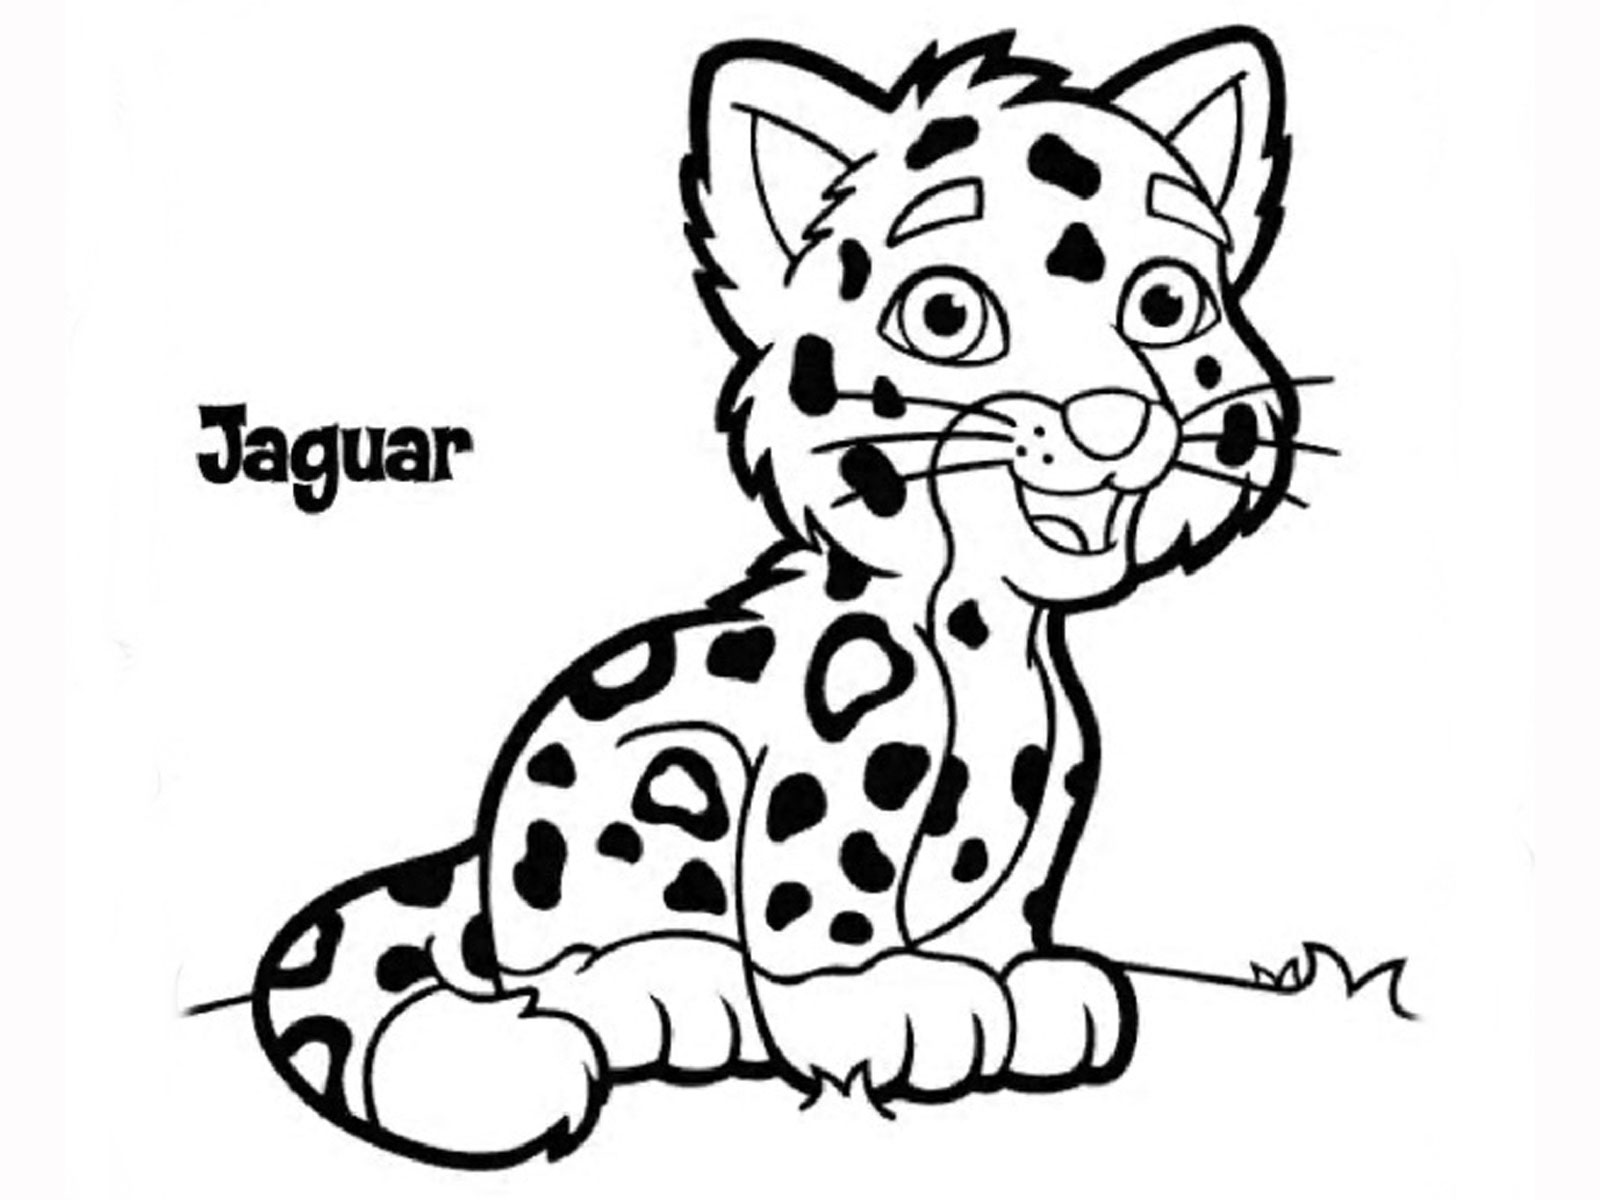 coloring pages jaguars - photo#2